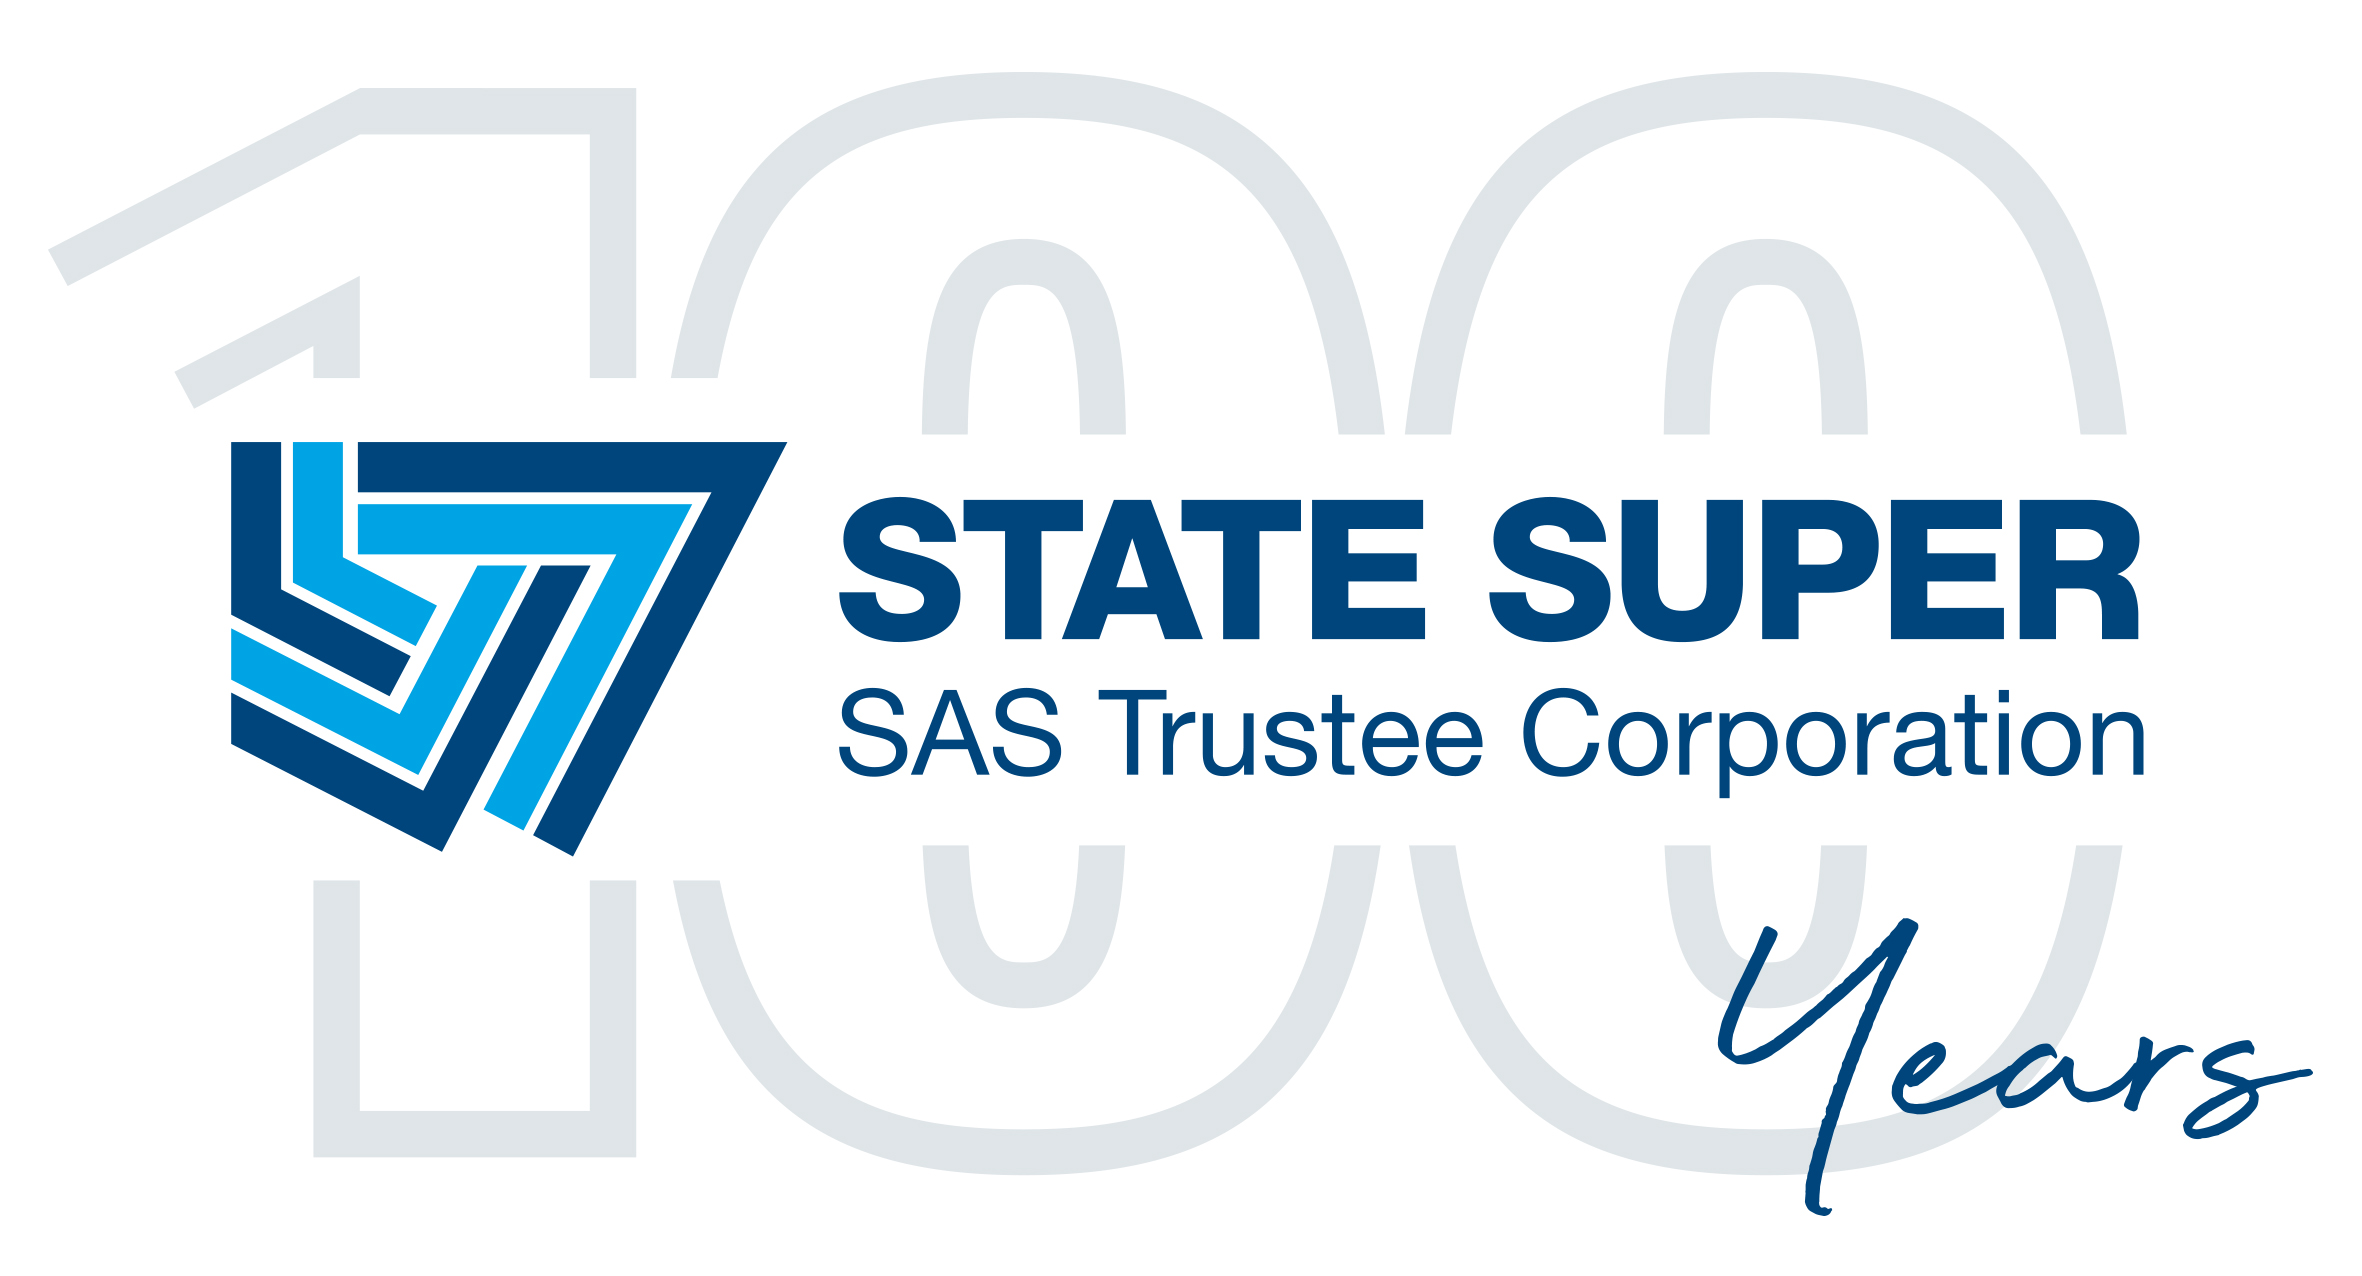 State Super turns 100 on 1 July -